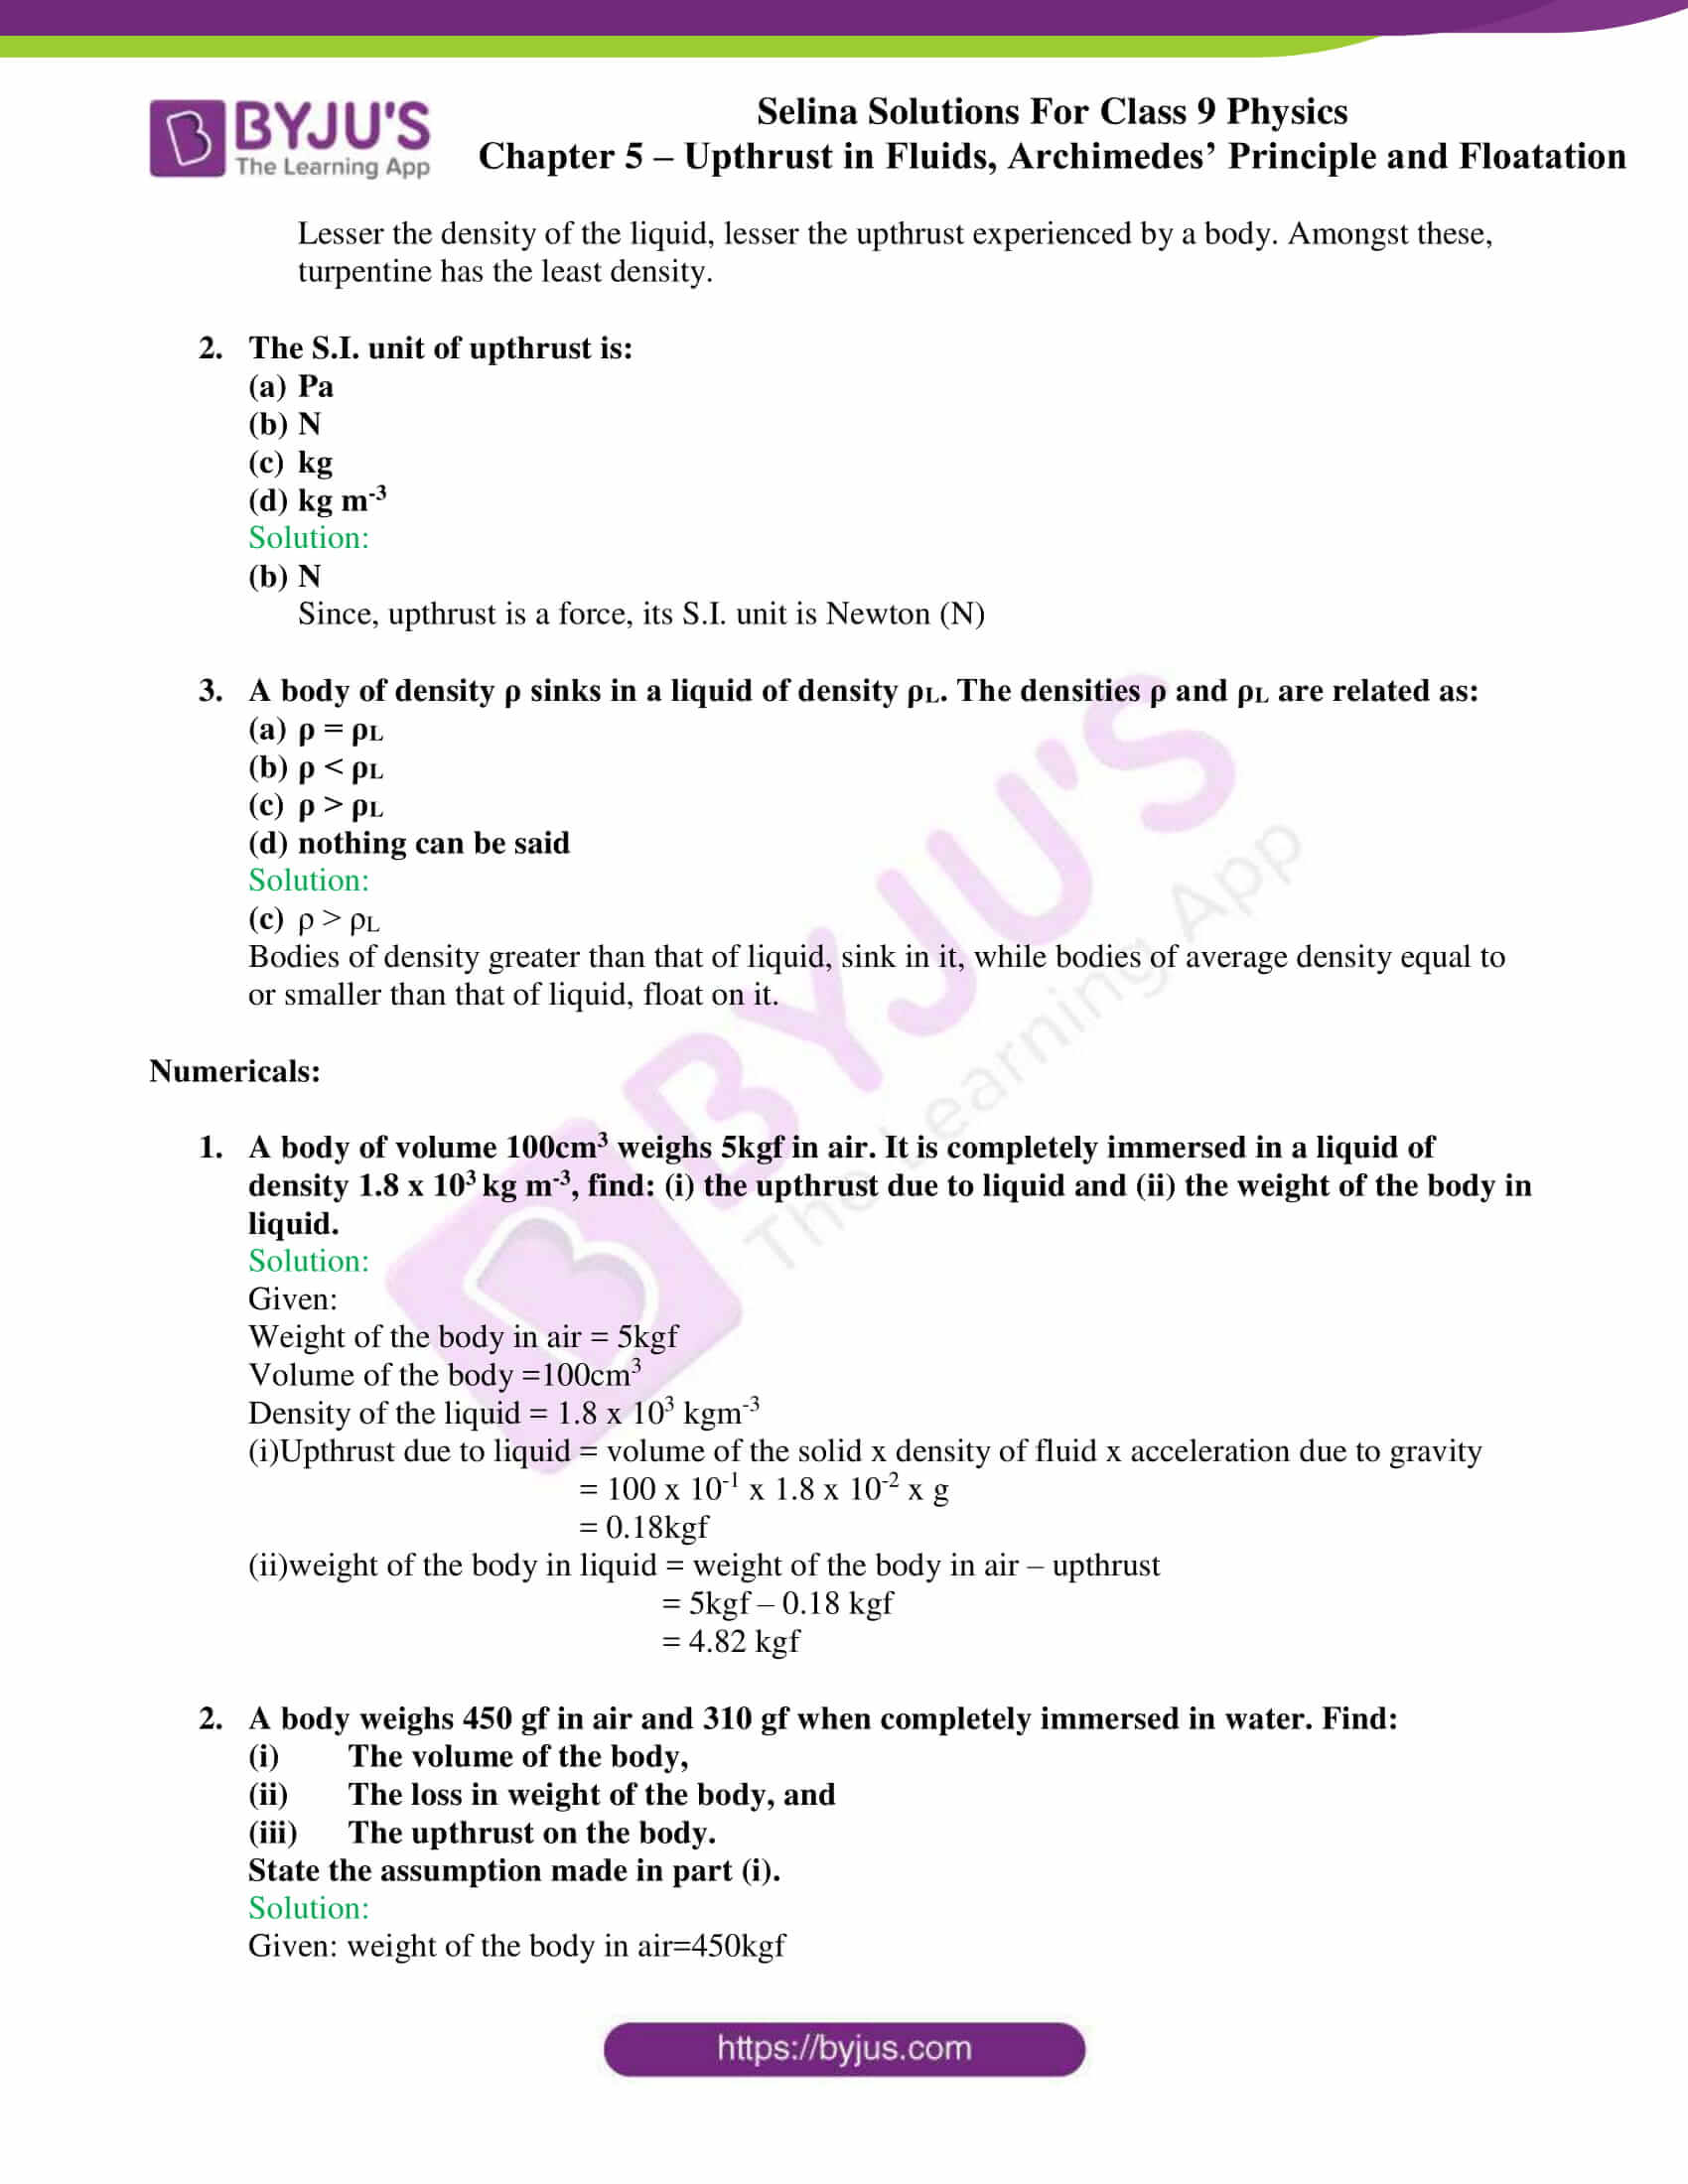 selina solutions class 9 physics chapter 5 part 09